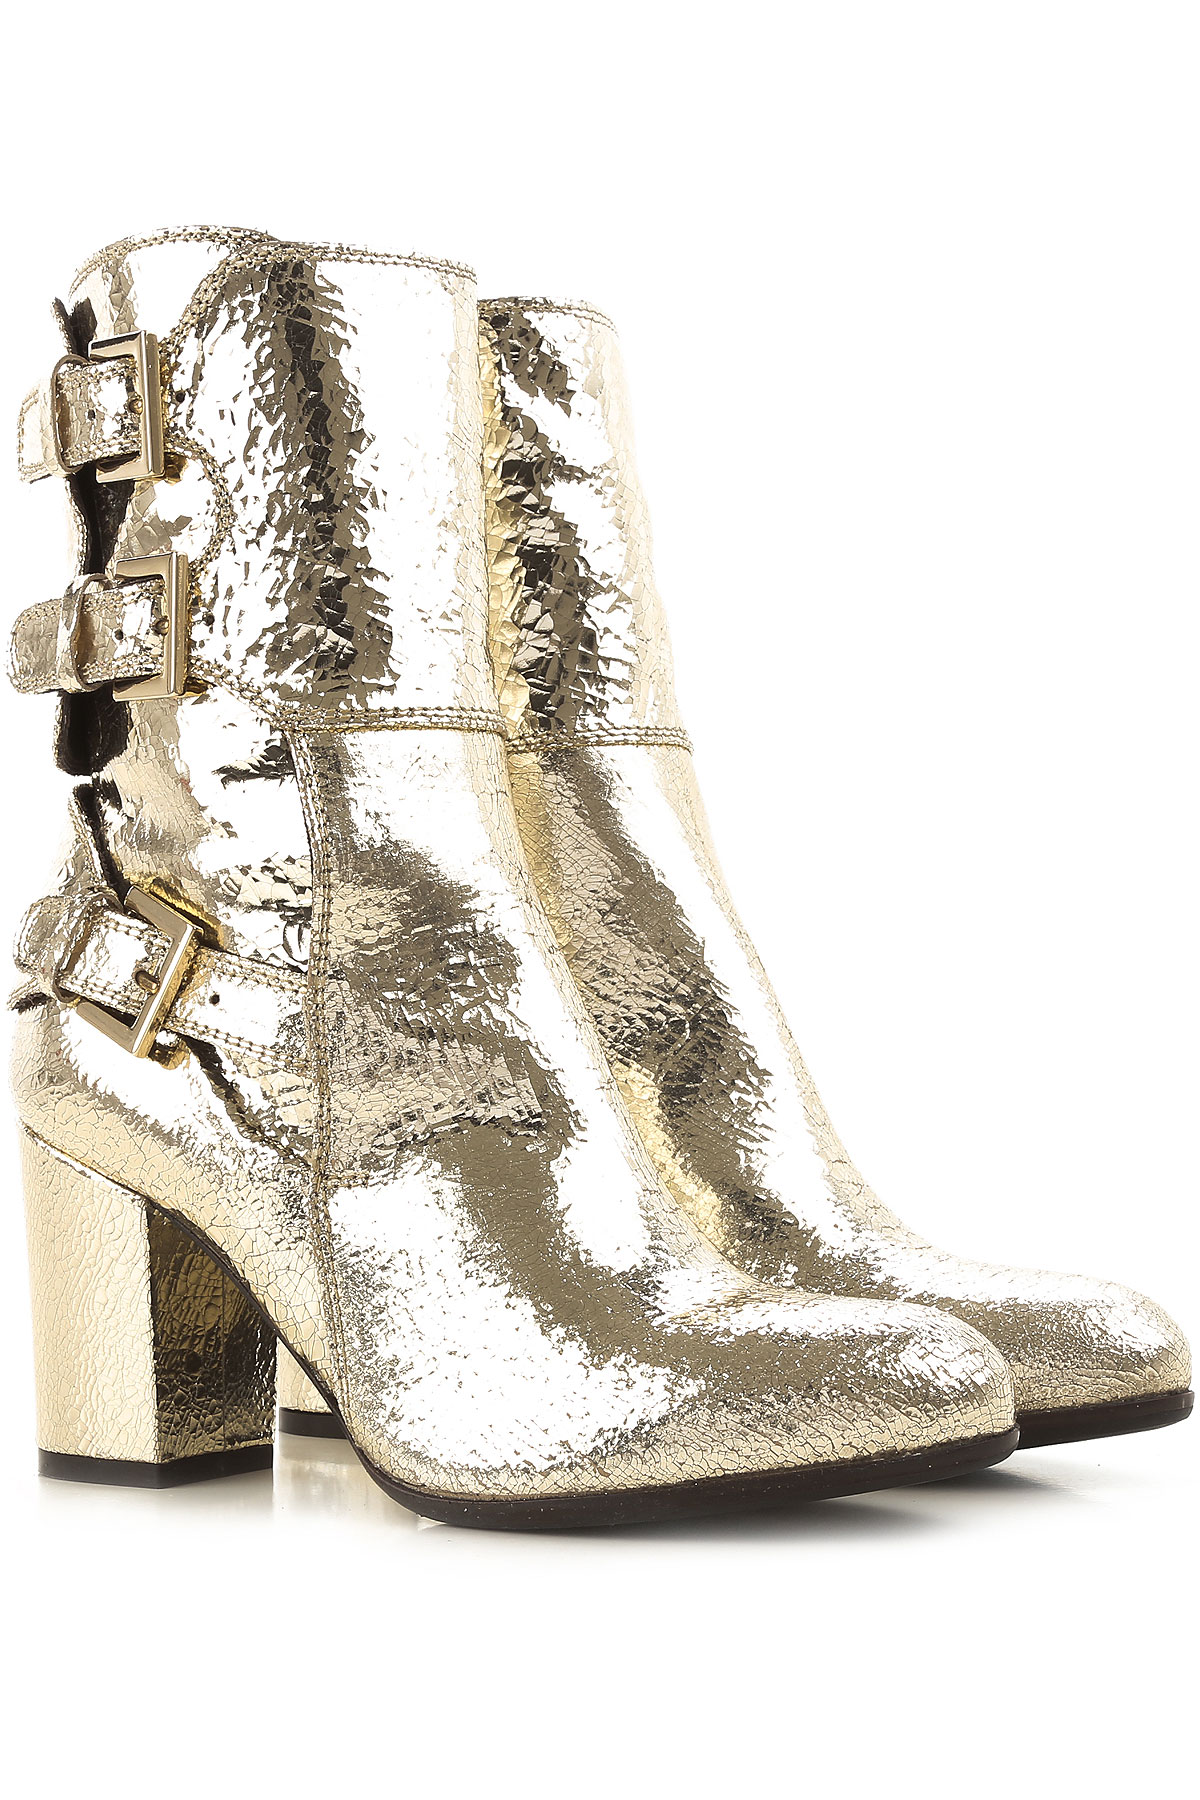 Image of Paris Texas Boots for Women, Booties On Sale in Outlet, Platinum, lame, 2017, 5.5 6 6.5 7 8 8.5 9